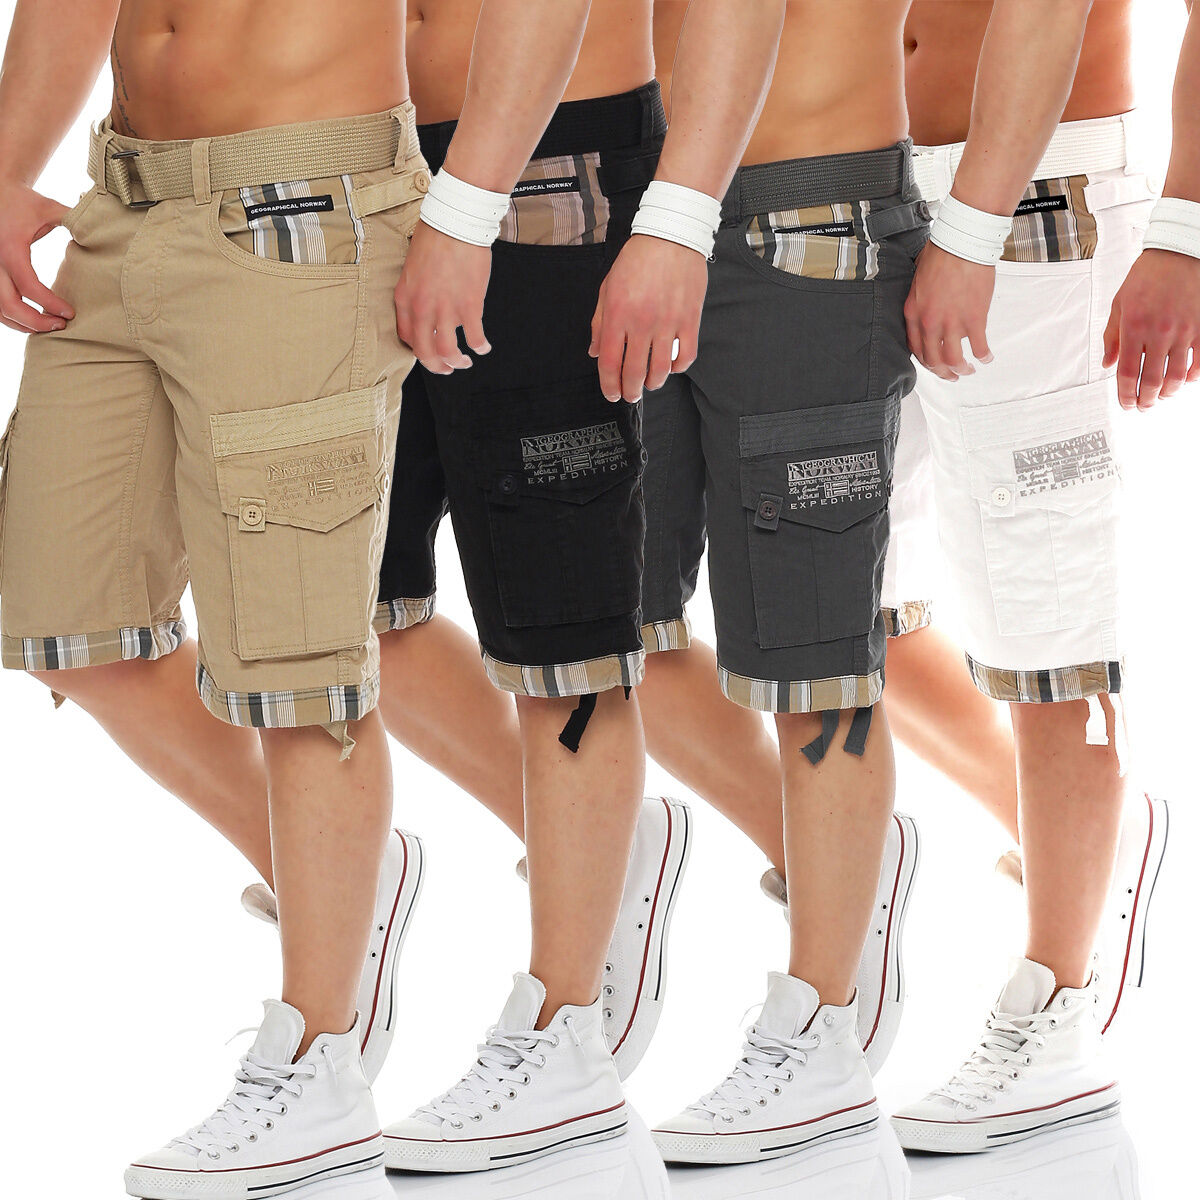 Geographical Norway Men's Trousers Summer Bermuda short Shorts Cargo Shorts